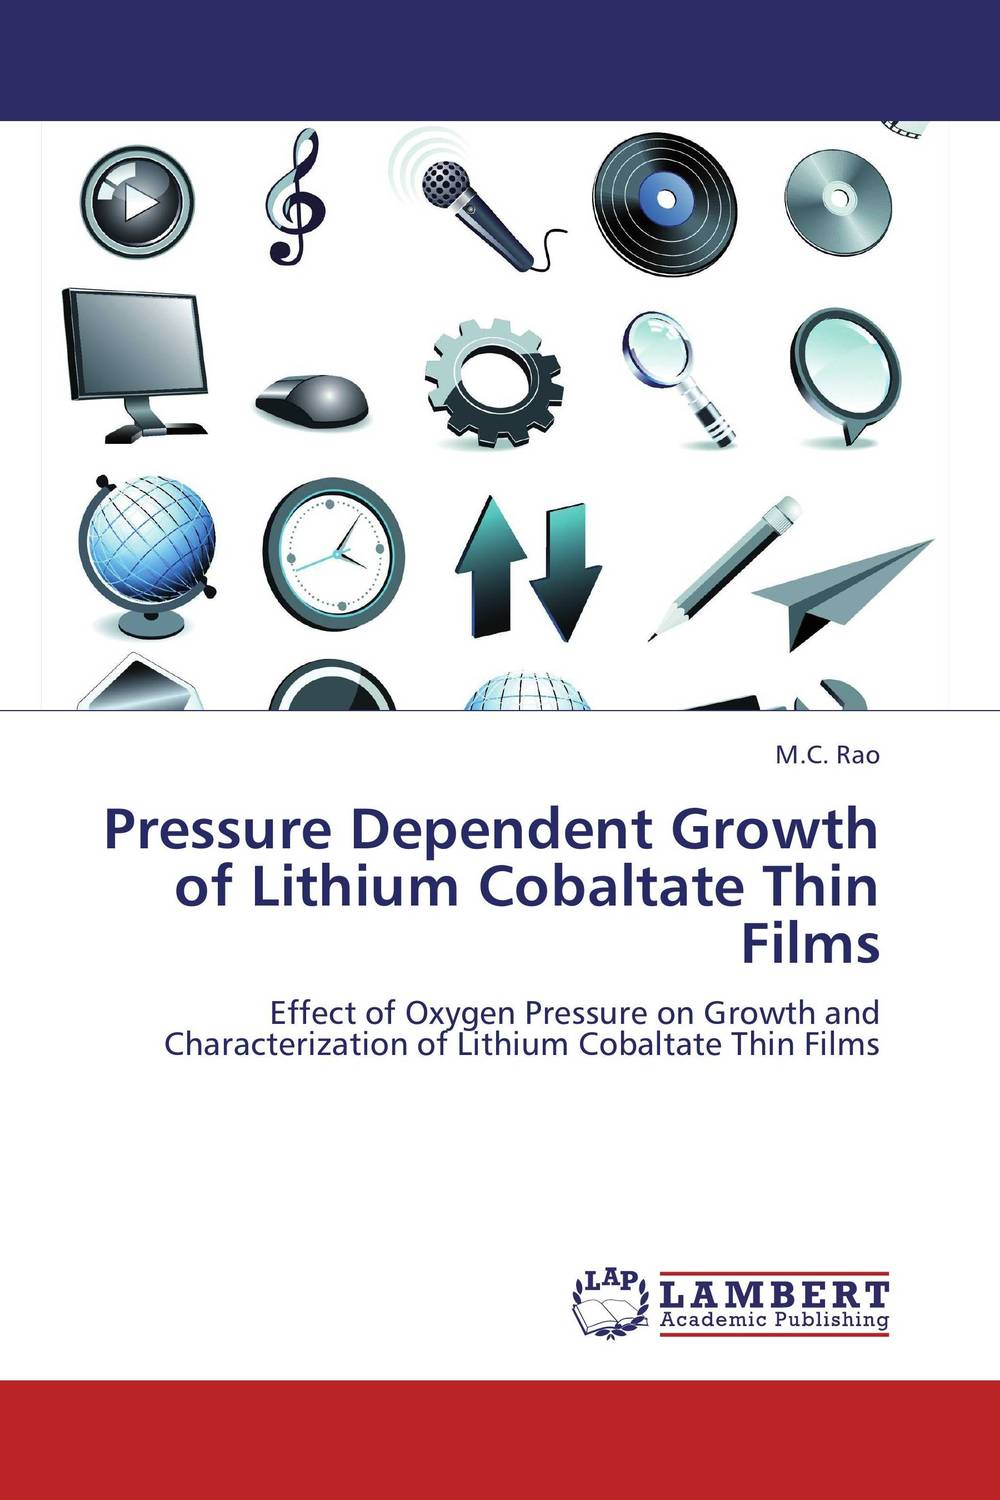 Pressure Dependent Growth of Lithium Cobaltate Thin Films msi ge62mvr 7rg apache pro